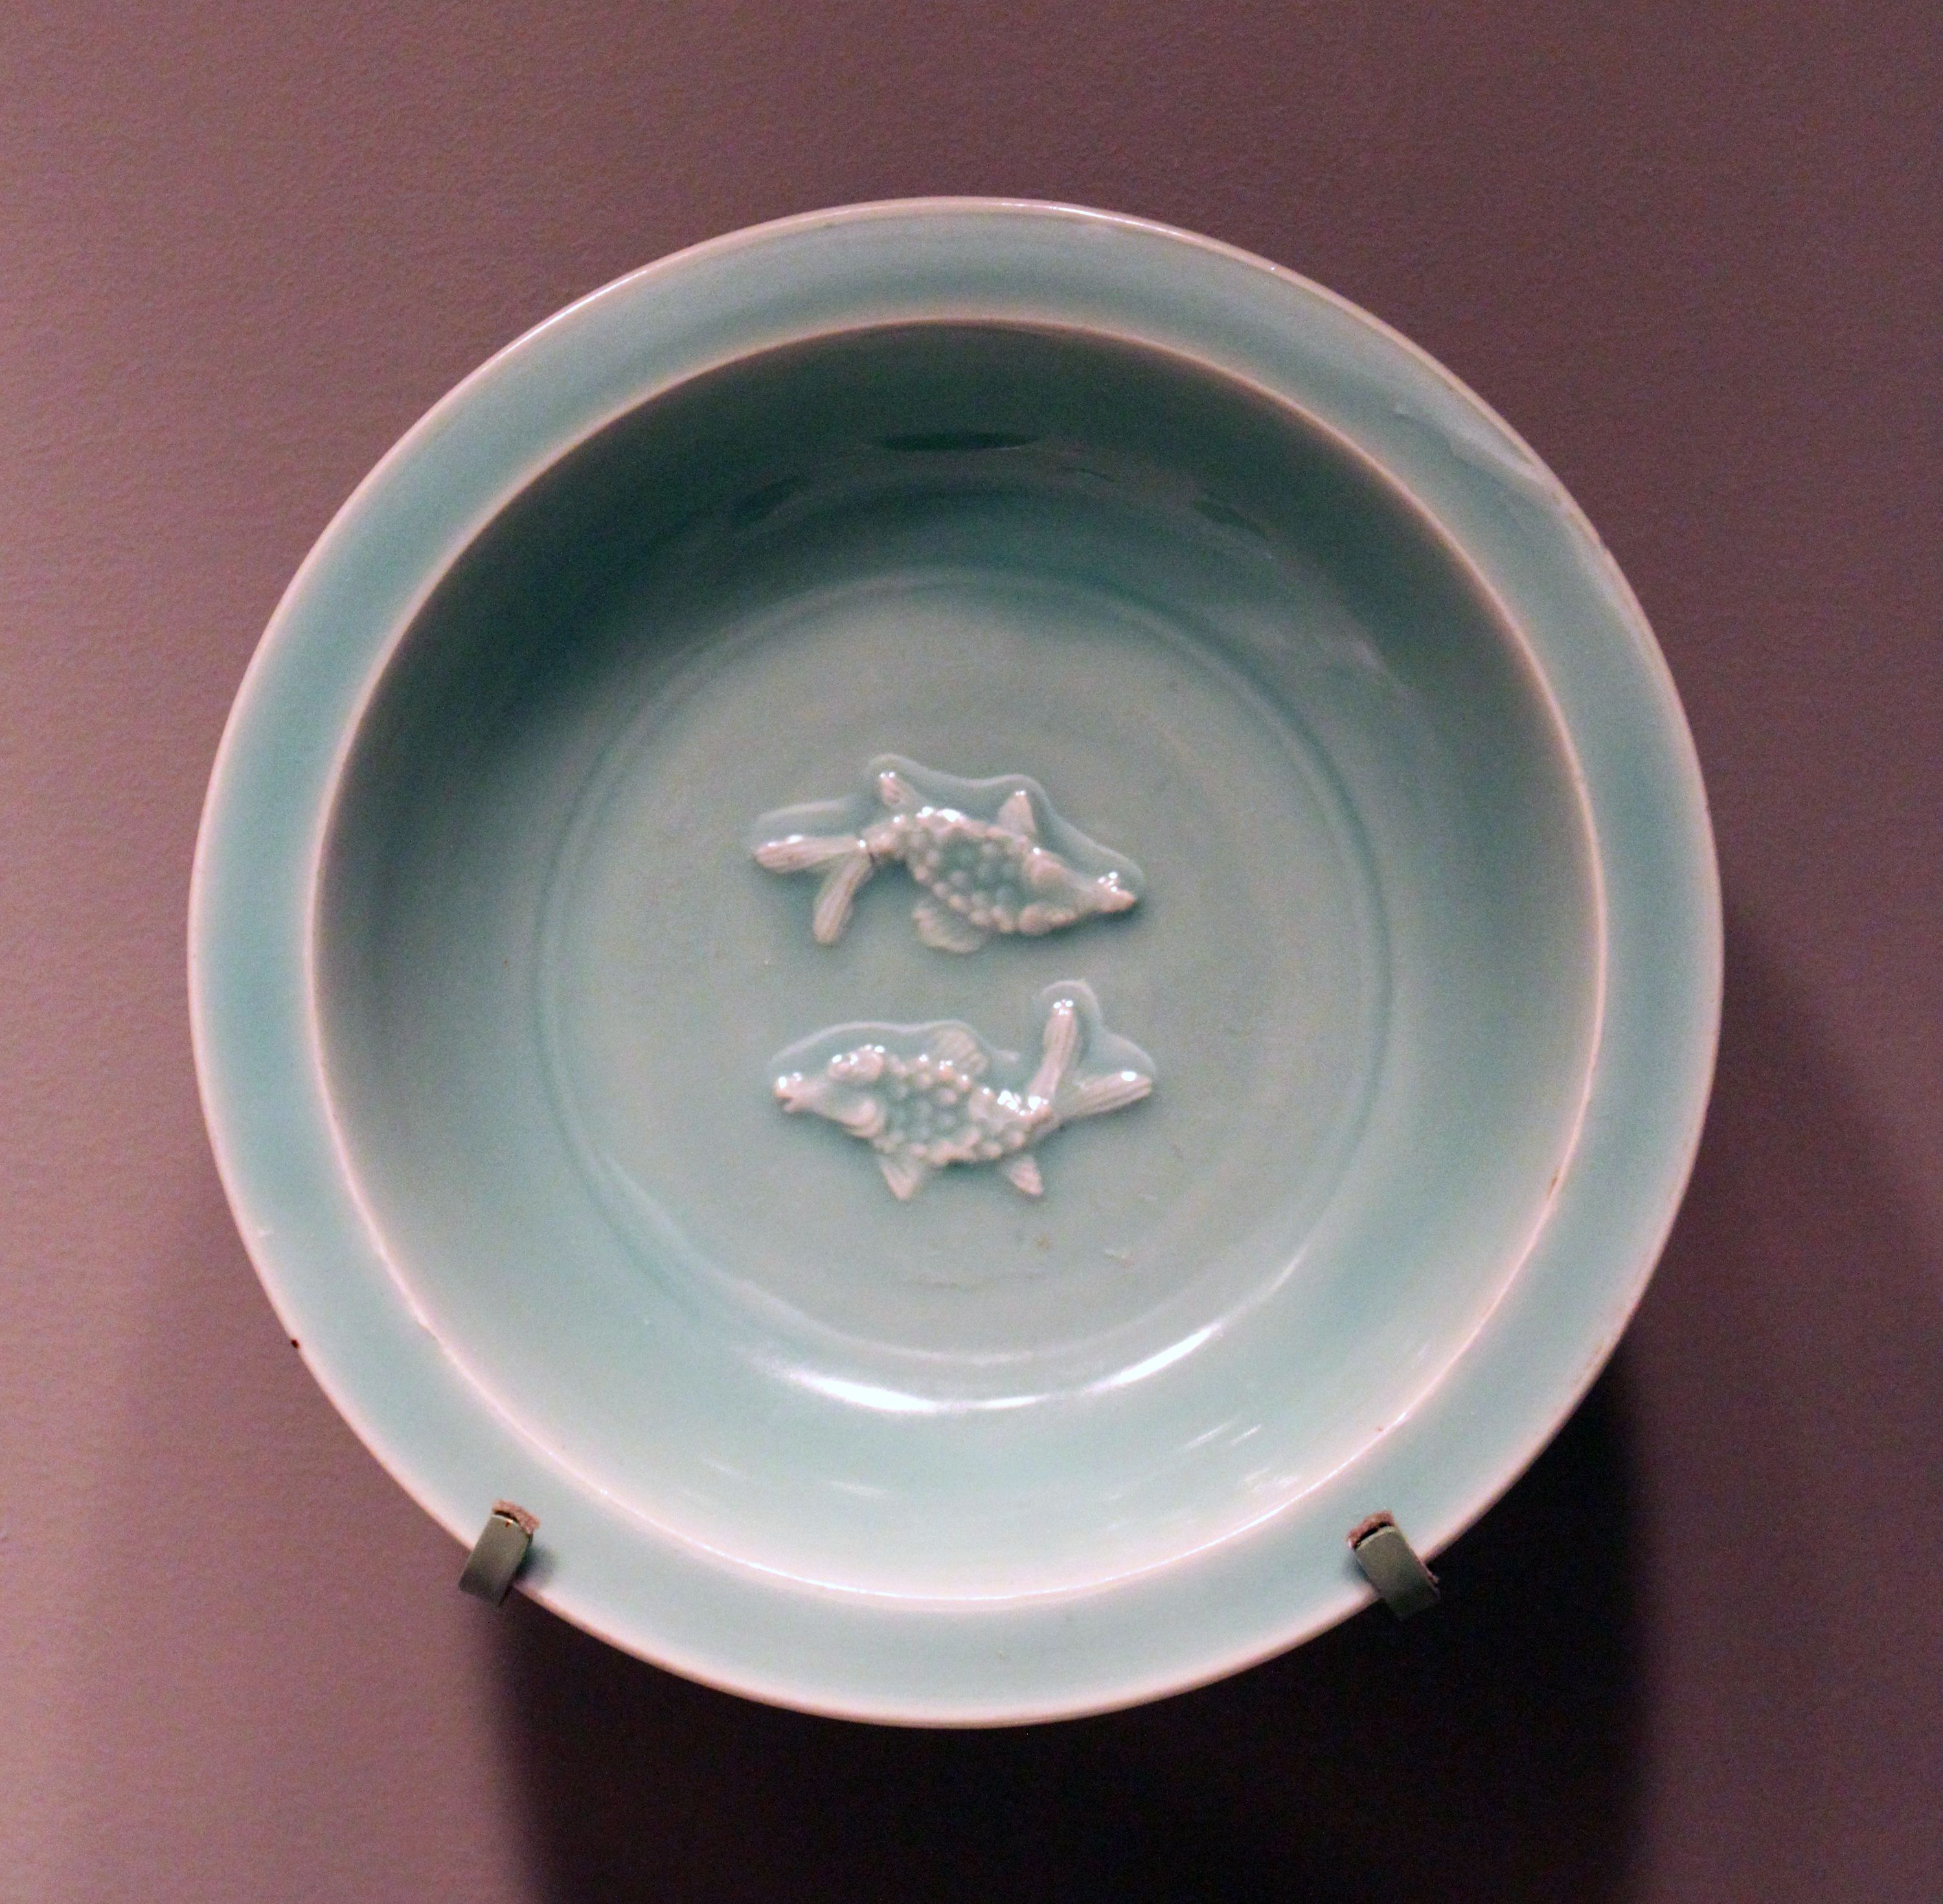 Bowl with double fish motiff china sung dynasty 12th 13th century bowl with double fish motiff china sung dynasty century lung chuan ware the double fish motif seen here is a traditional chinese symbol of marital buycottarizona Gallery